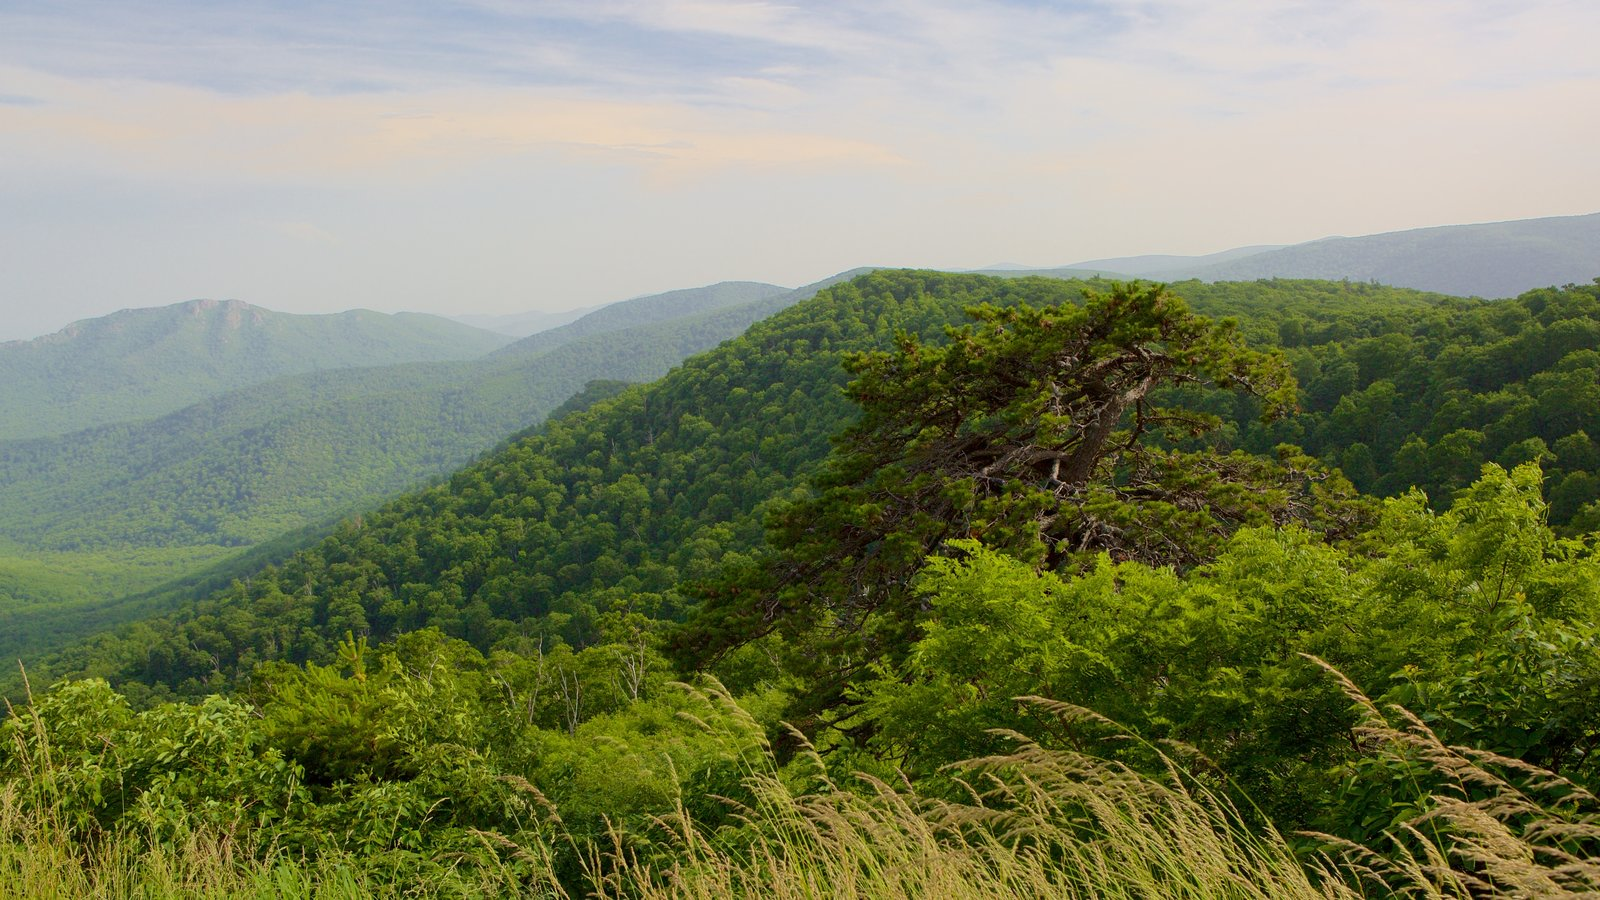 Shenandoah National Park which includes landscape views, tranquil scenes and mountains